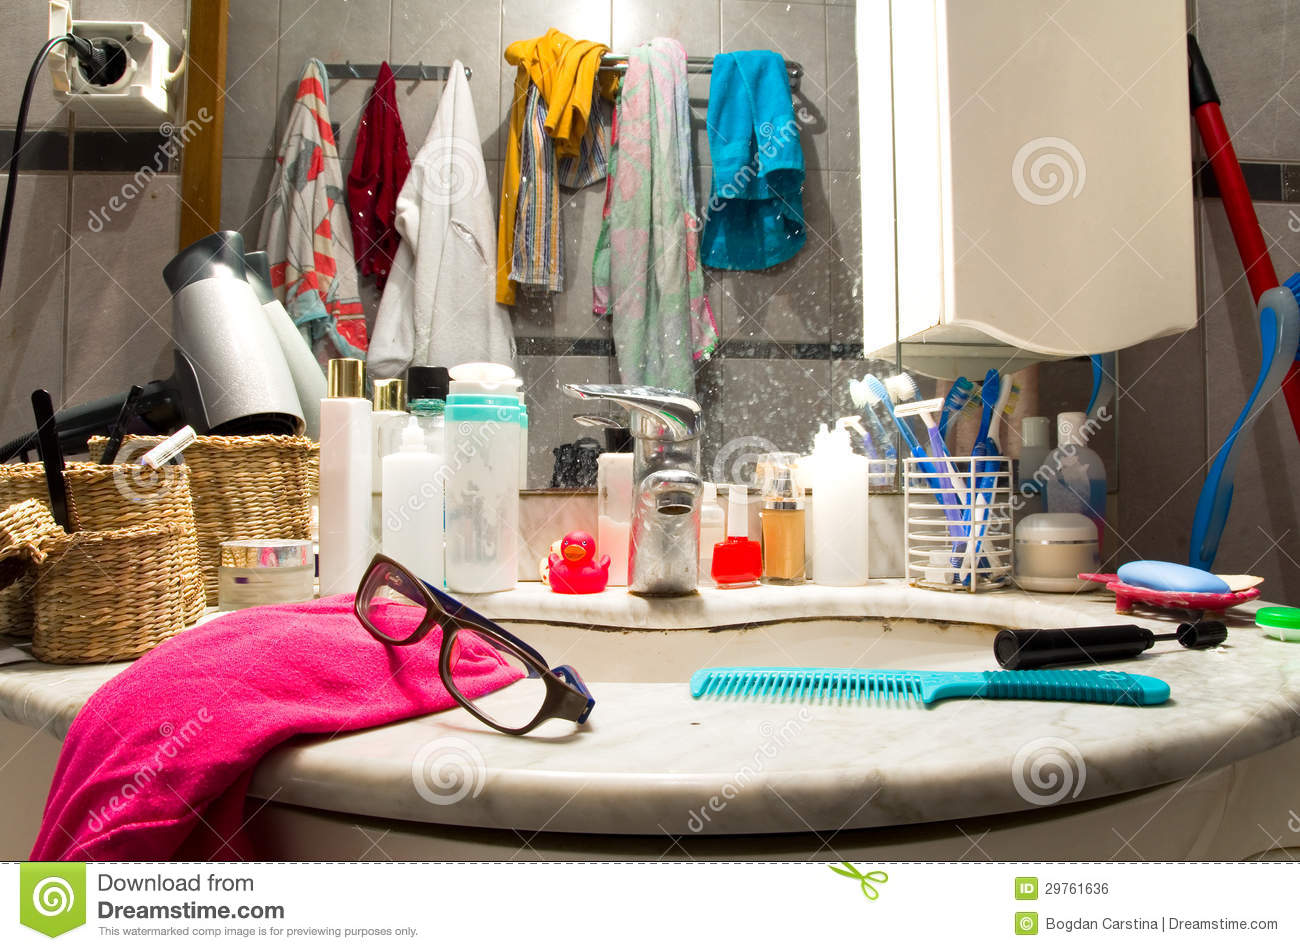 Messy bathroom stock photo Image of sink unhygienic  29761636